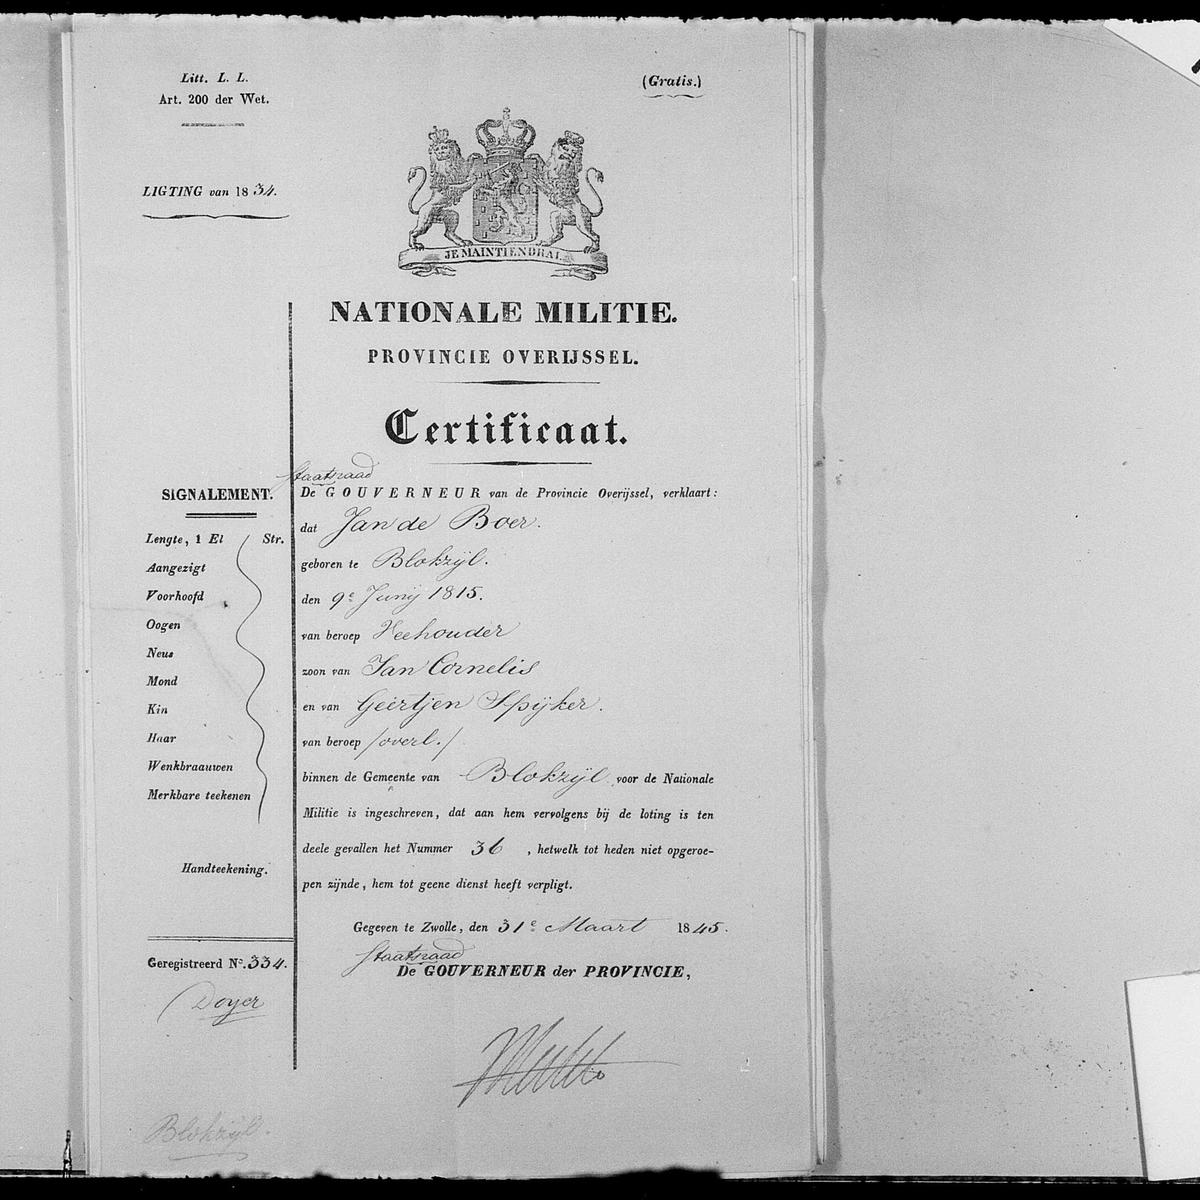 Certificate about service in the national militia for Jan de Boer, 1845-03-31